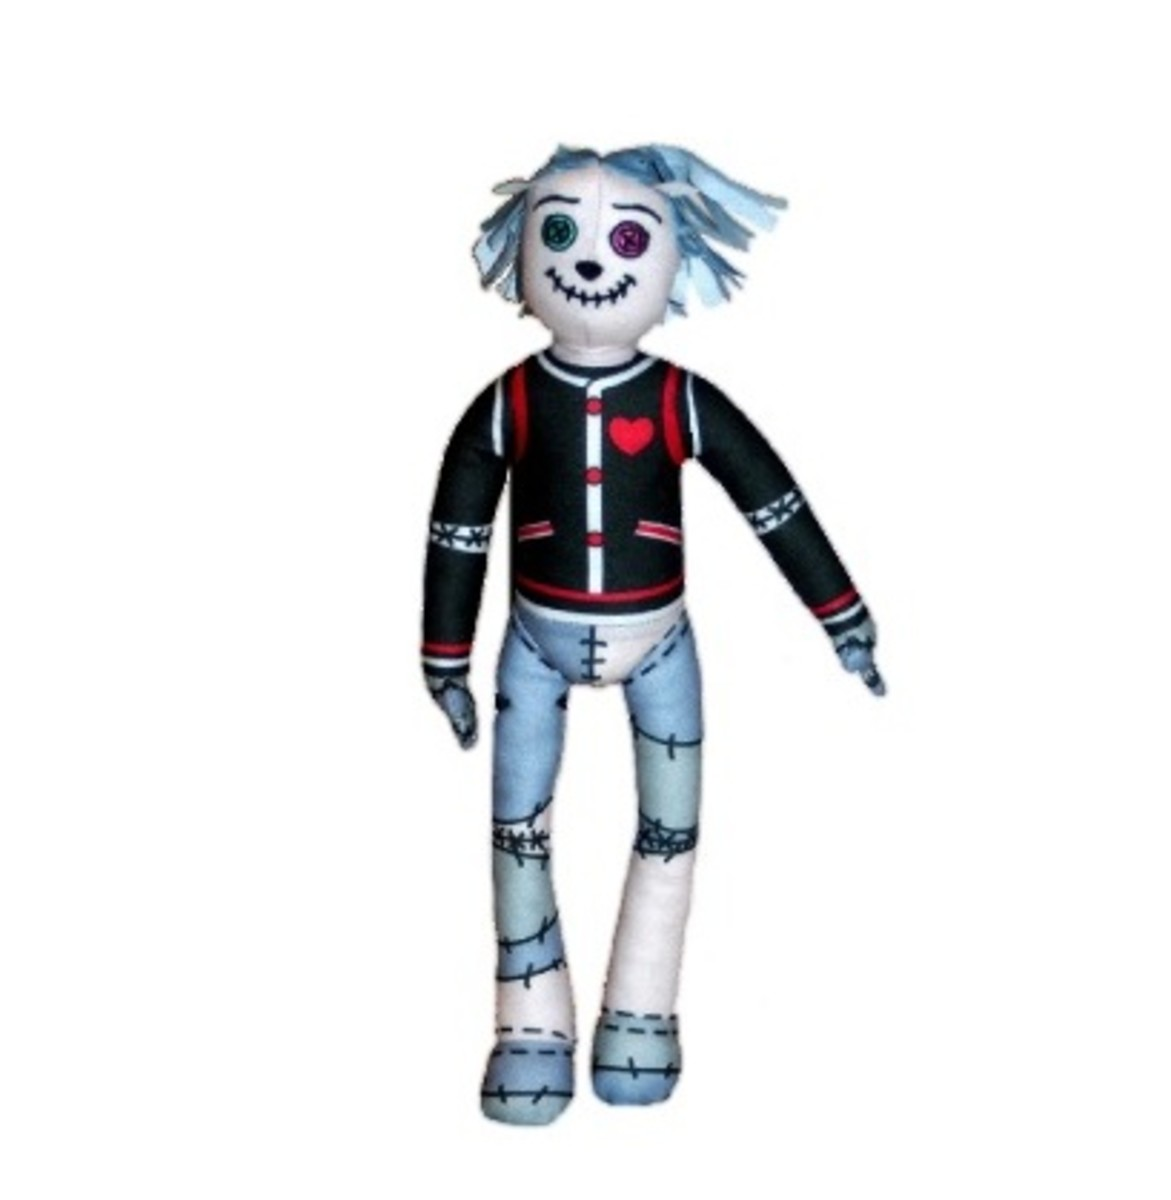 The Hoodude Voodoo Doll From Monster High